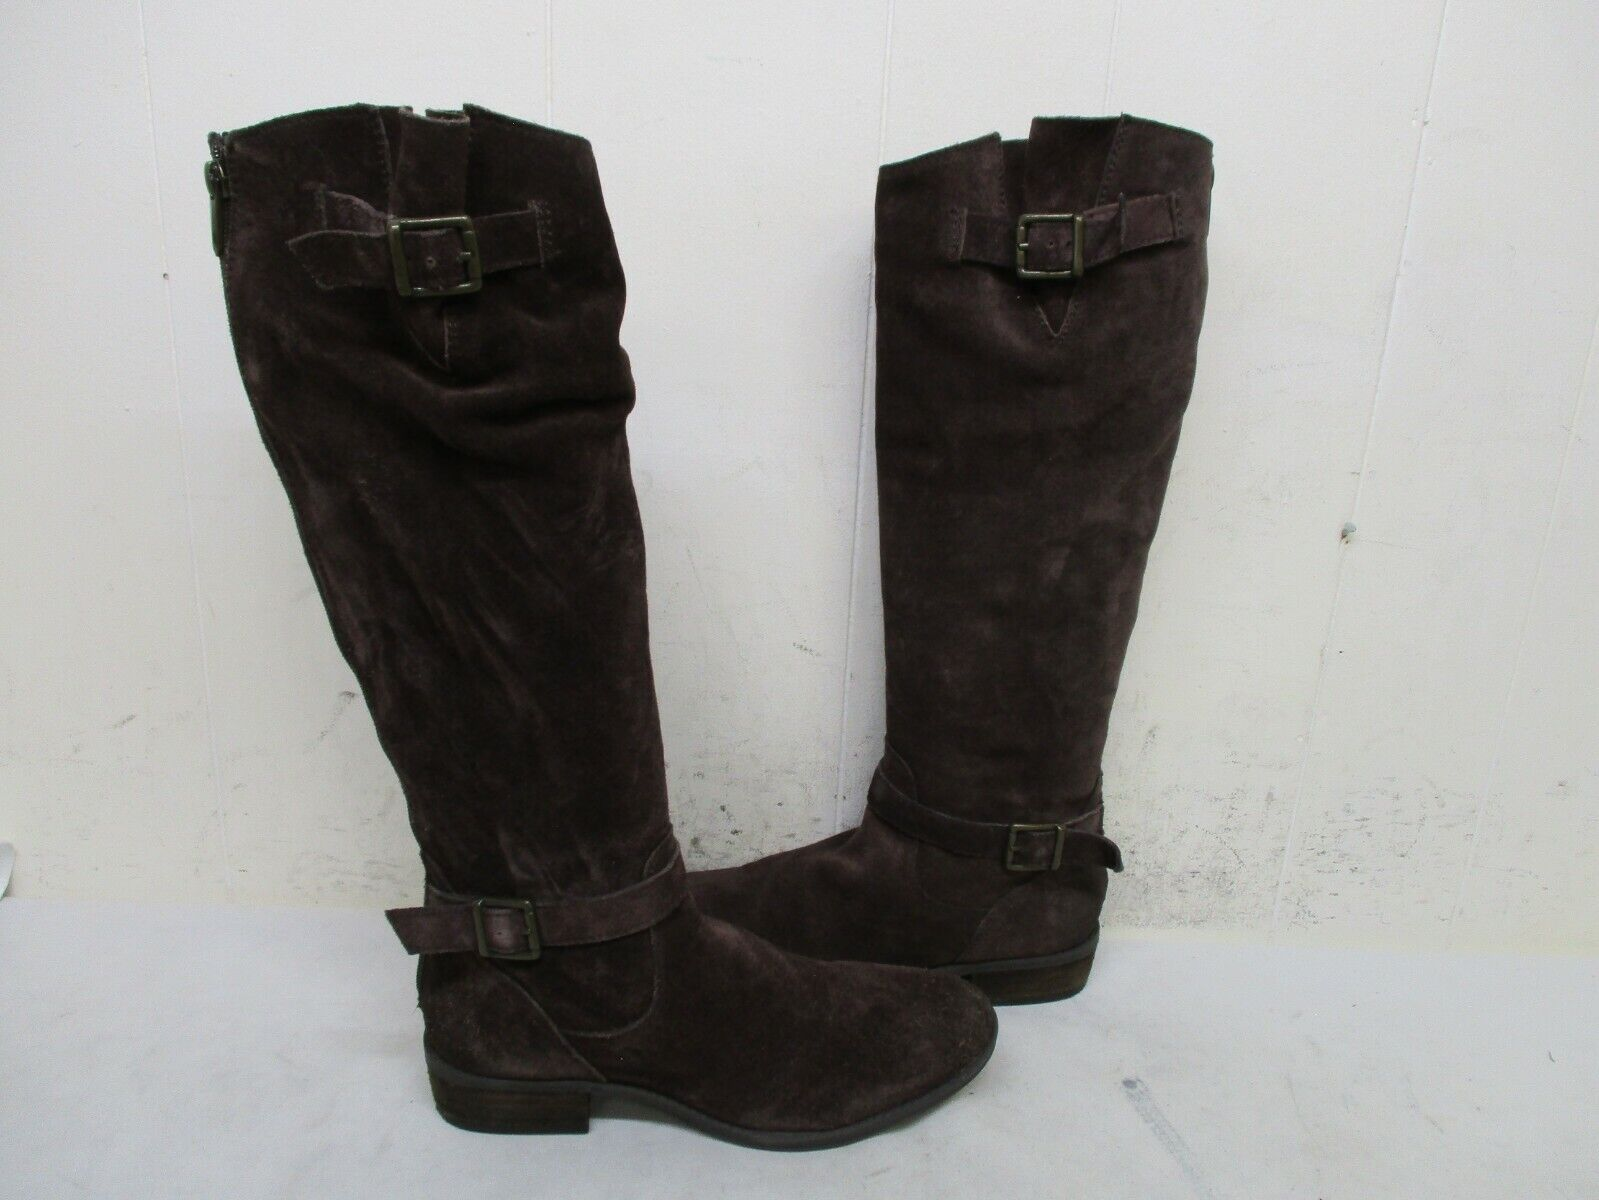 Sam Edelman Painter Brown Suede Leather Zip Knee High Boots Womens Size 7 M